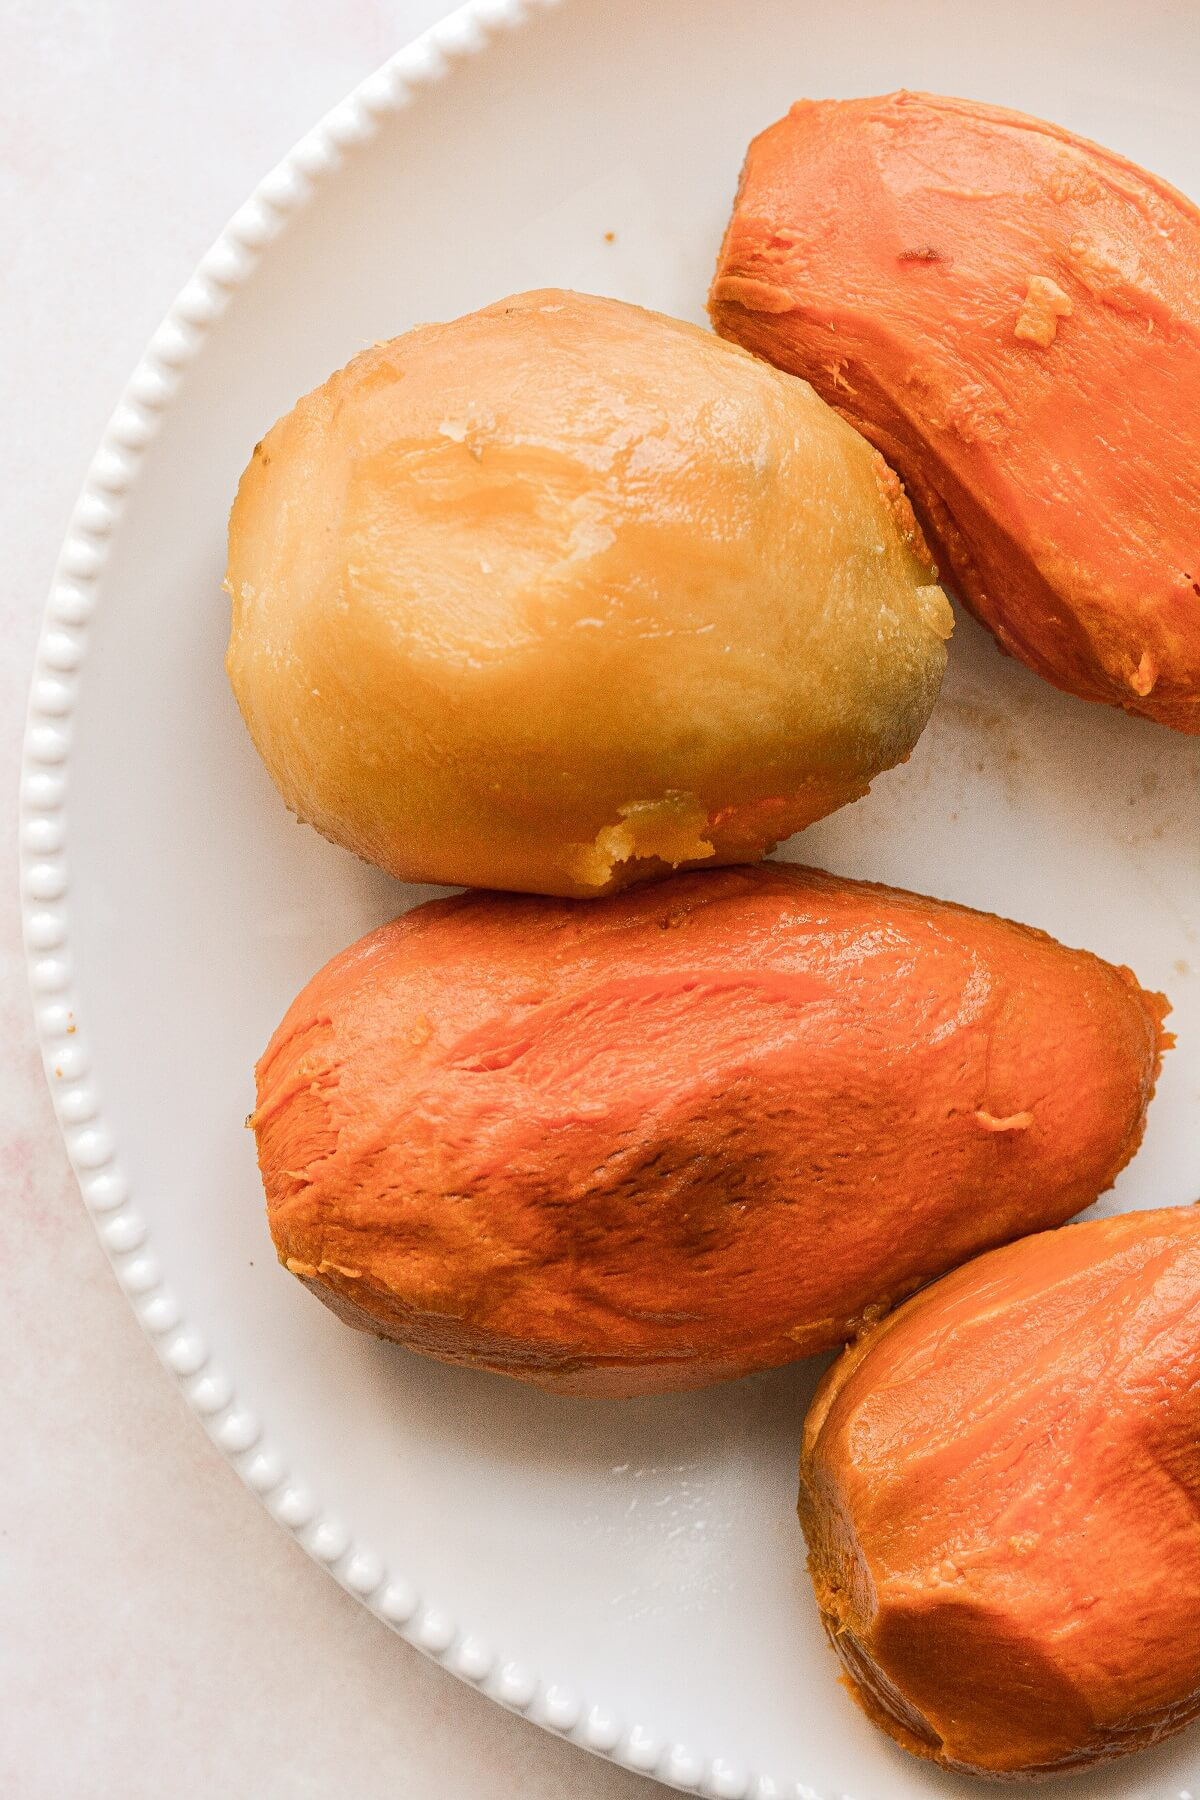 Roasted sweet potatoes without their peel, on a white plate.